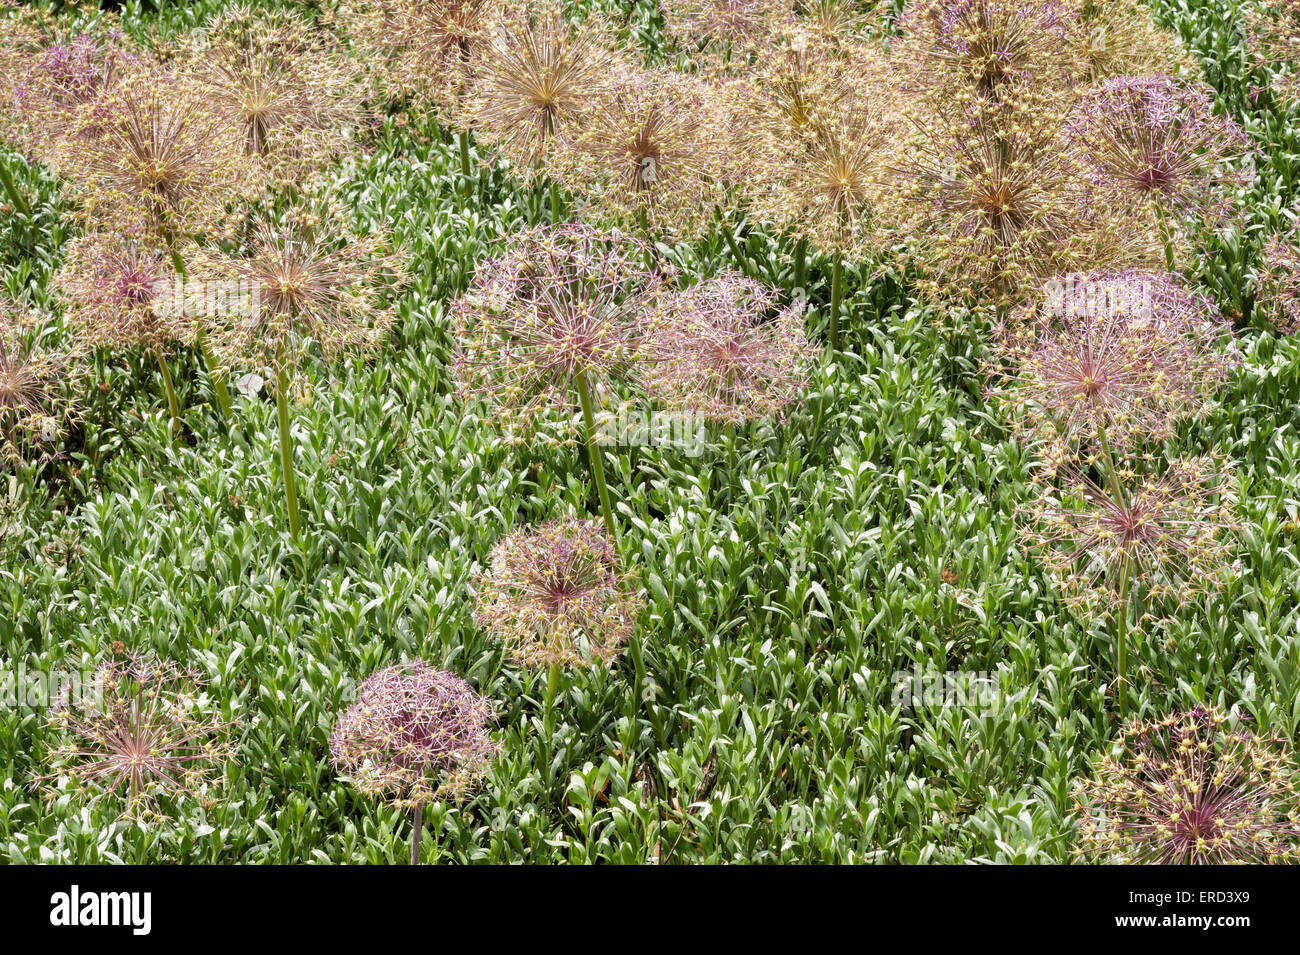 The dry seed heads of allium flowers in a garden in Italy - Stock Image